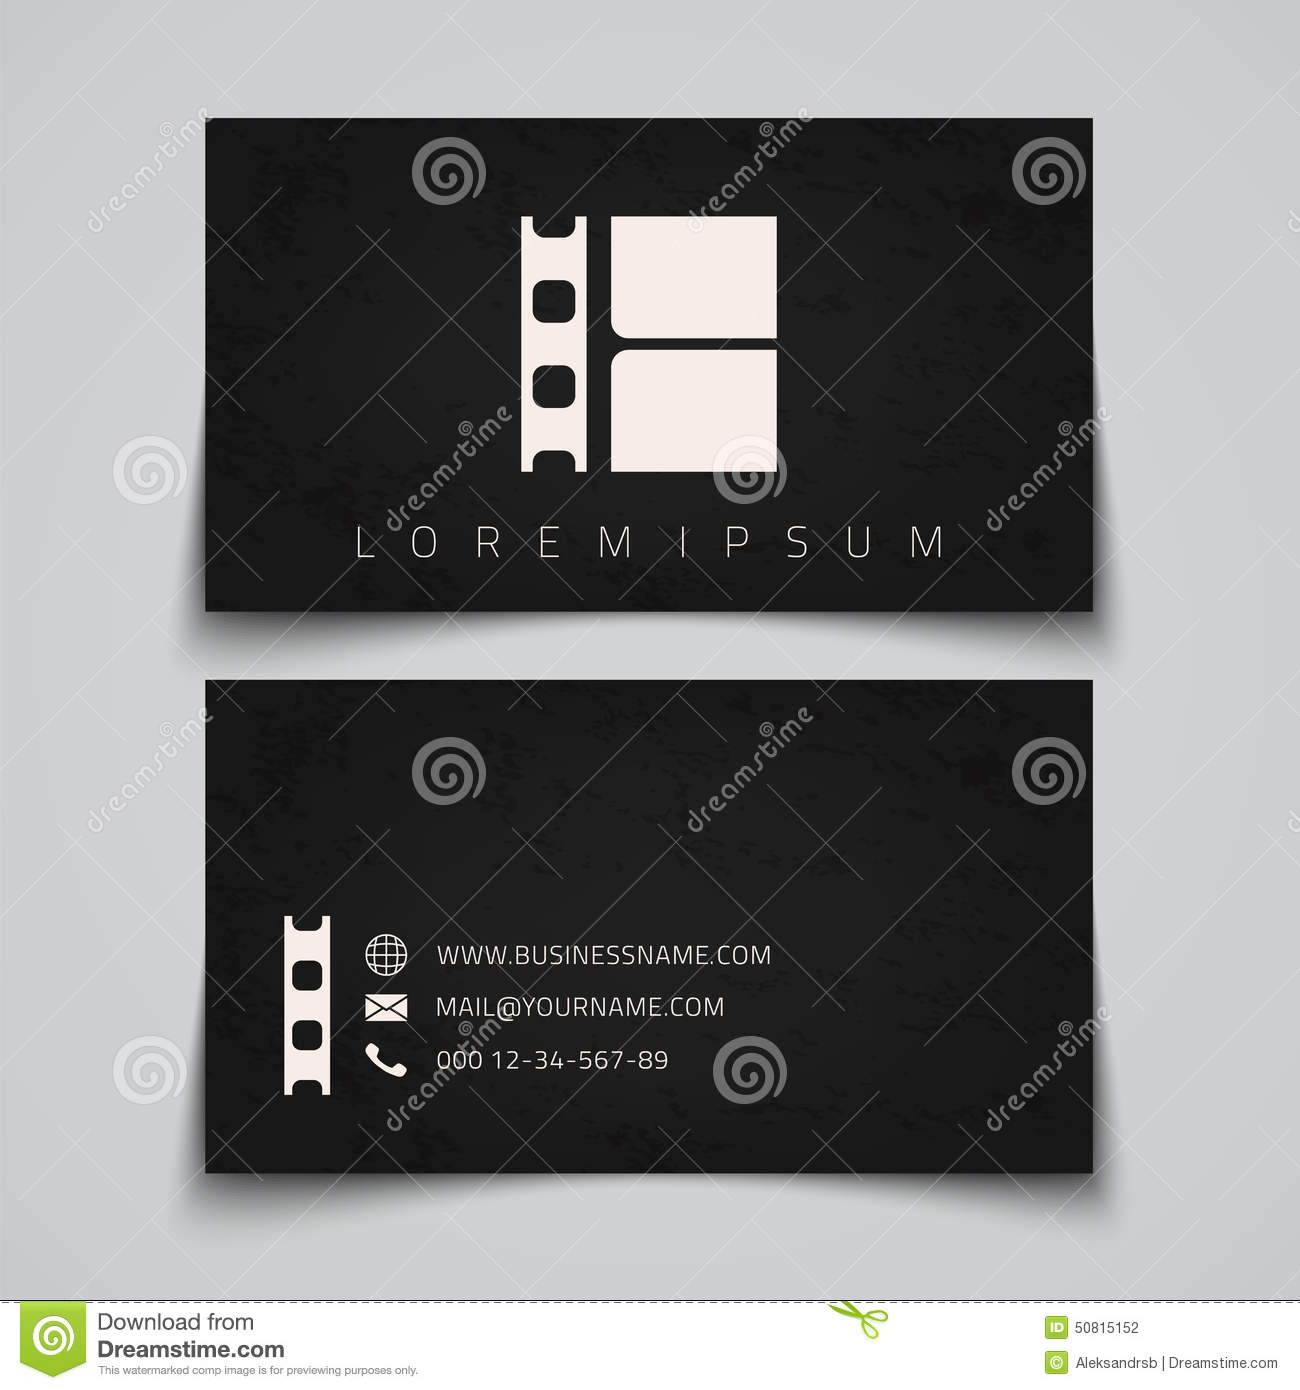 Business card template film strip concept logo stock vector business card template film strip concept logo reheart Images